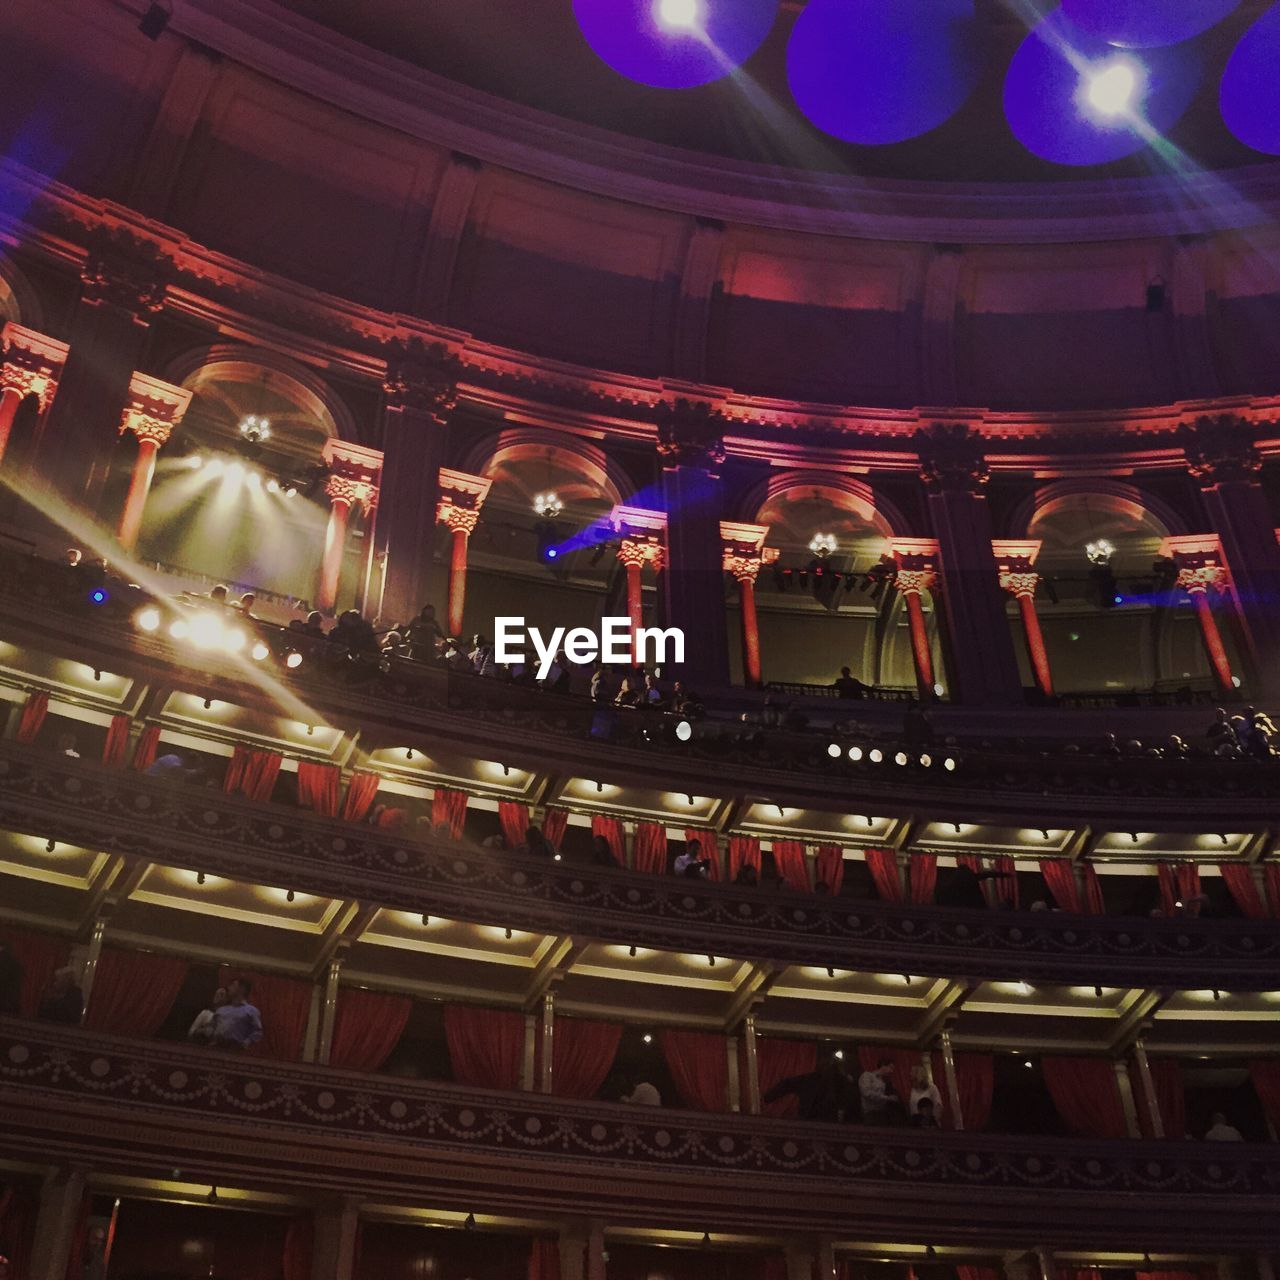 indoors, illuminated, architecture, low angle view, built structure, arts culture and entertainment, music, nightlife, real people, men, night, nightclub, people